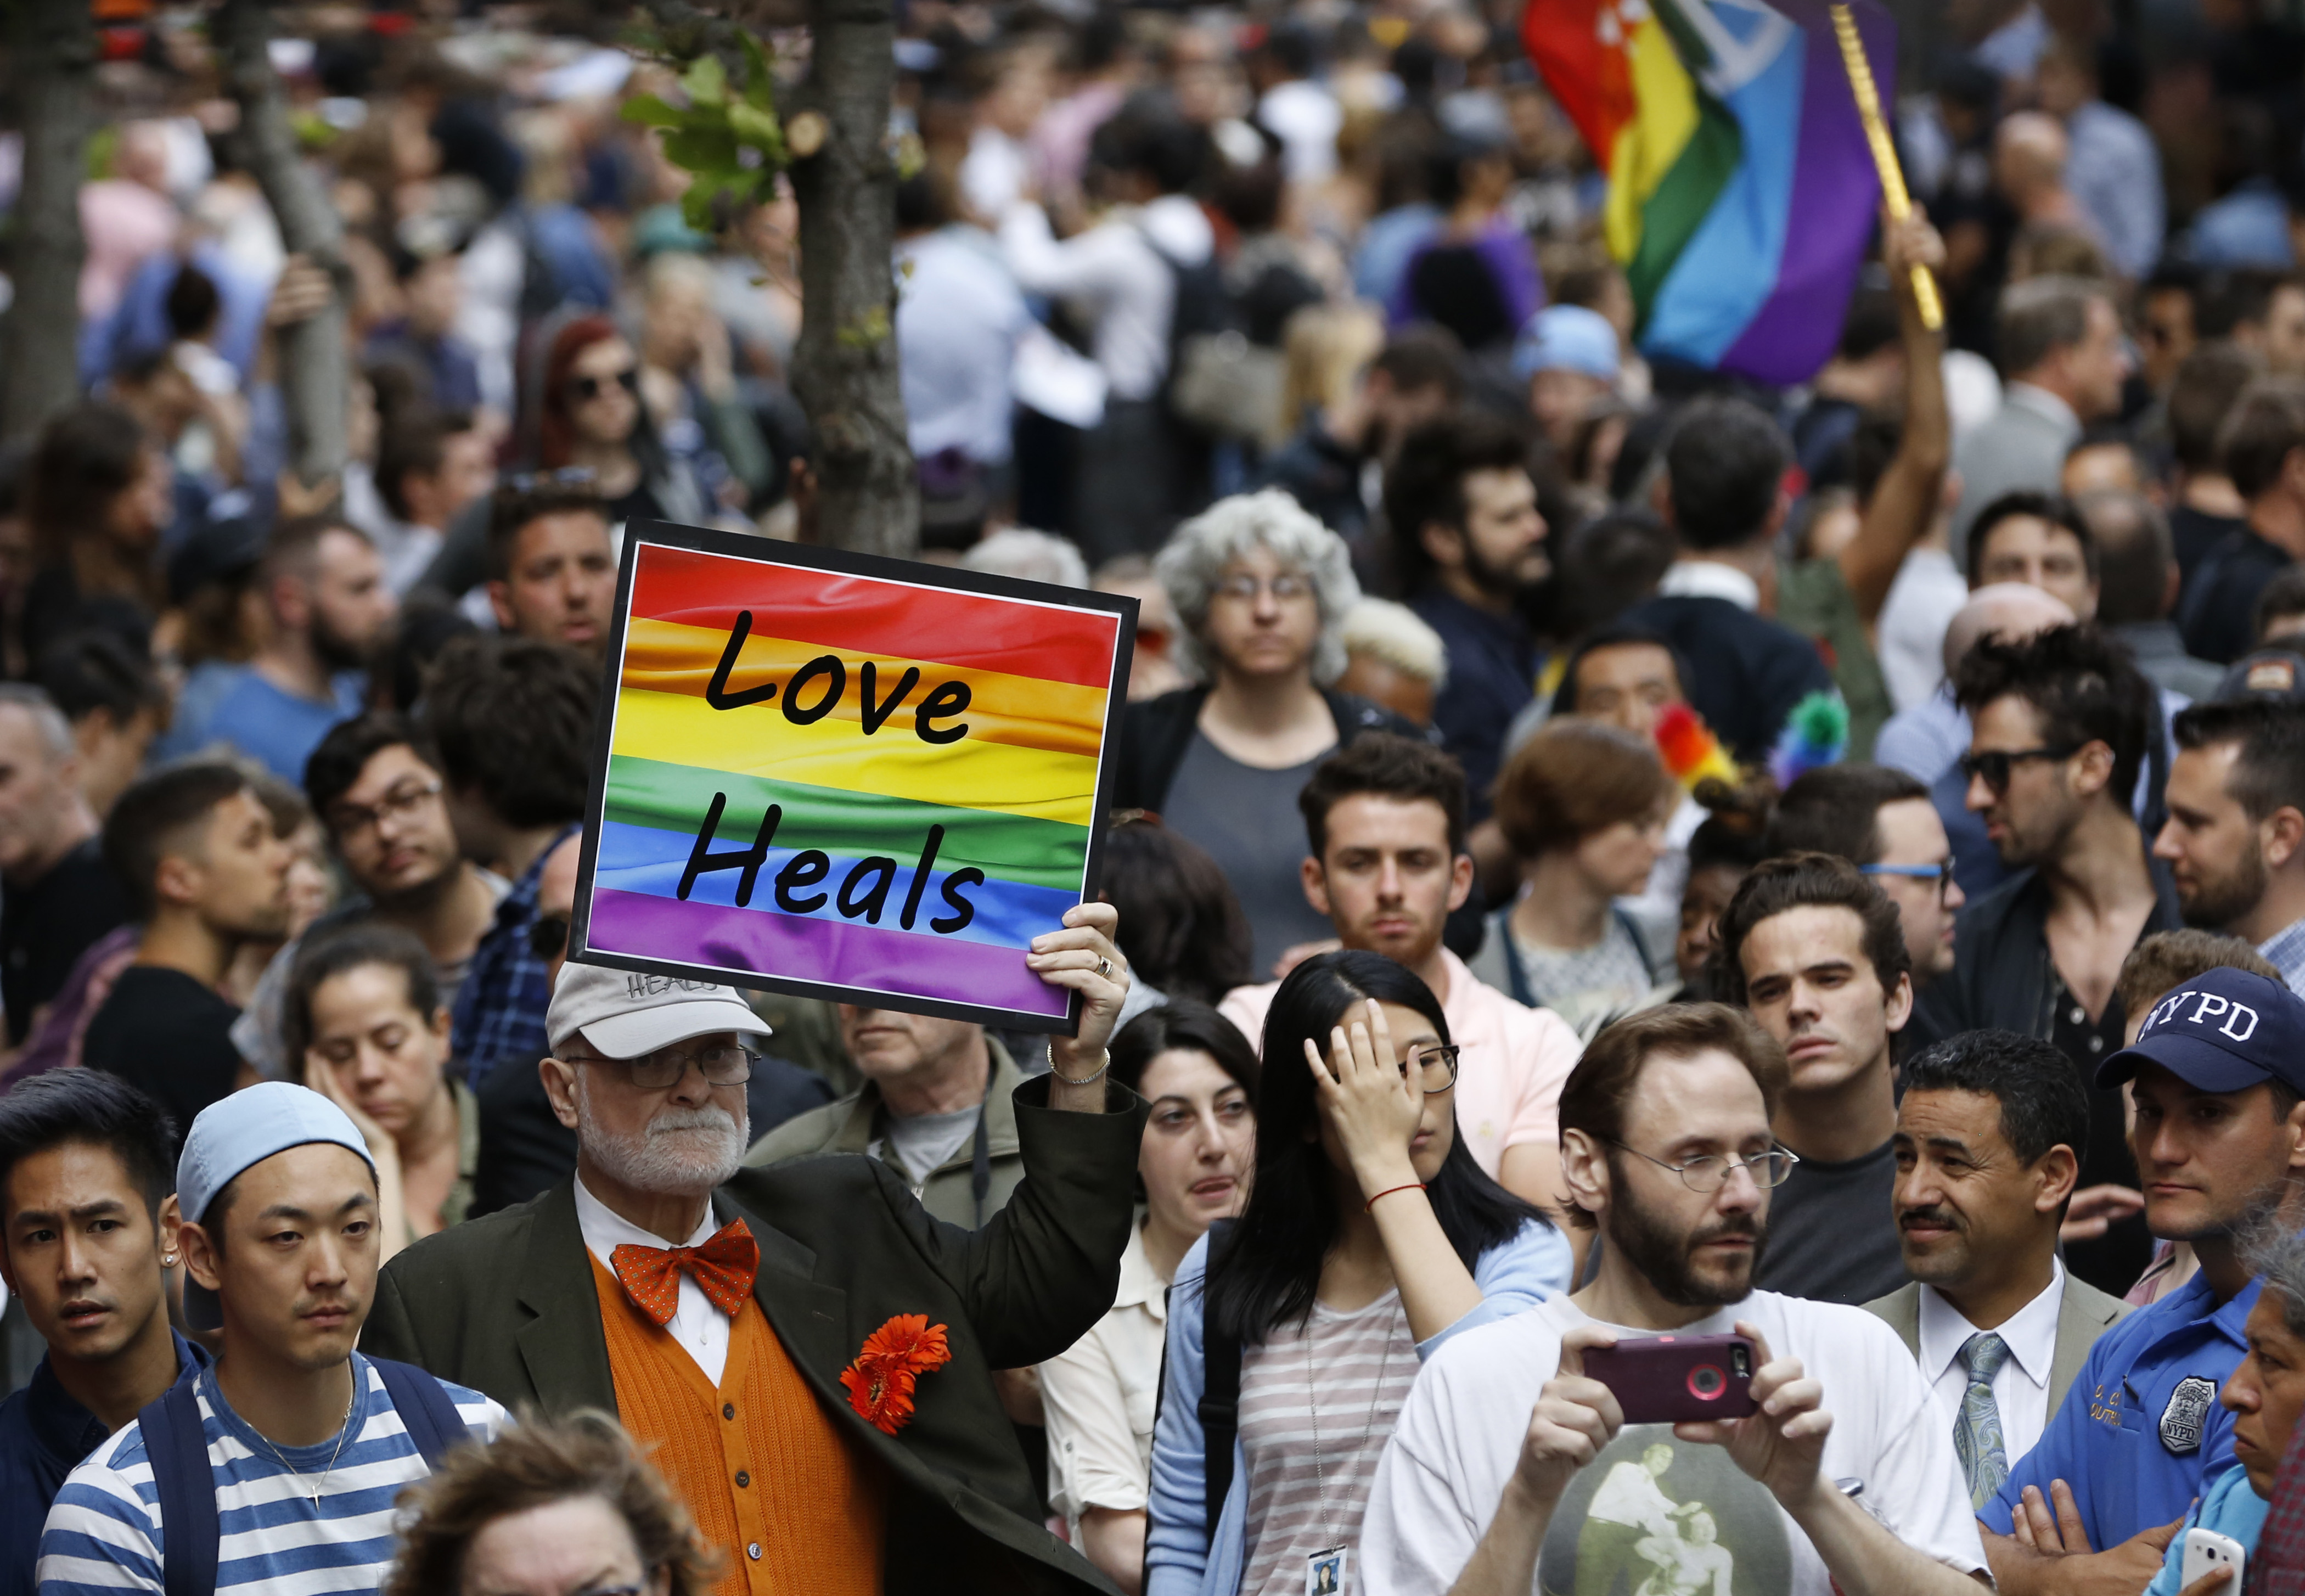 A man walks through the crowd holding a sign during a vigil and memorial for victims of the Orlando nightclub shootings near the historic Stonewall Inn in New York, June 13, 2016.